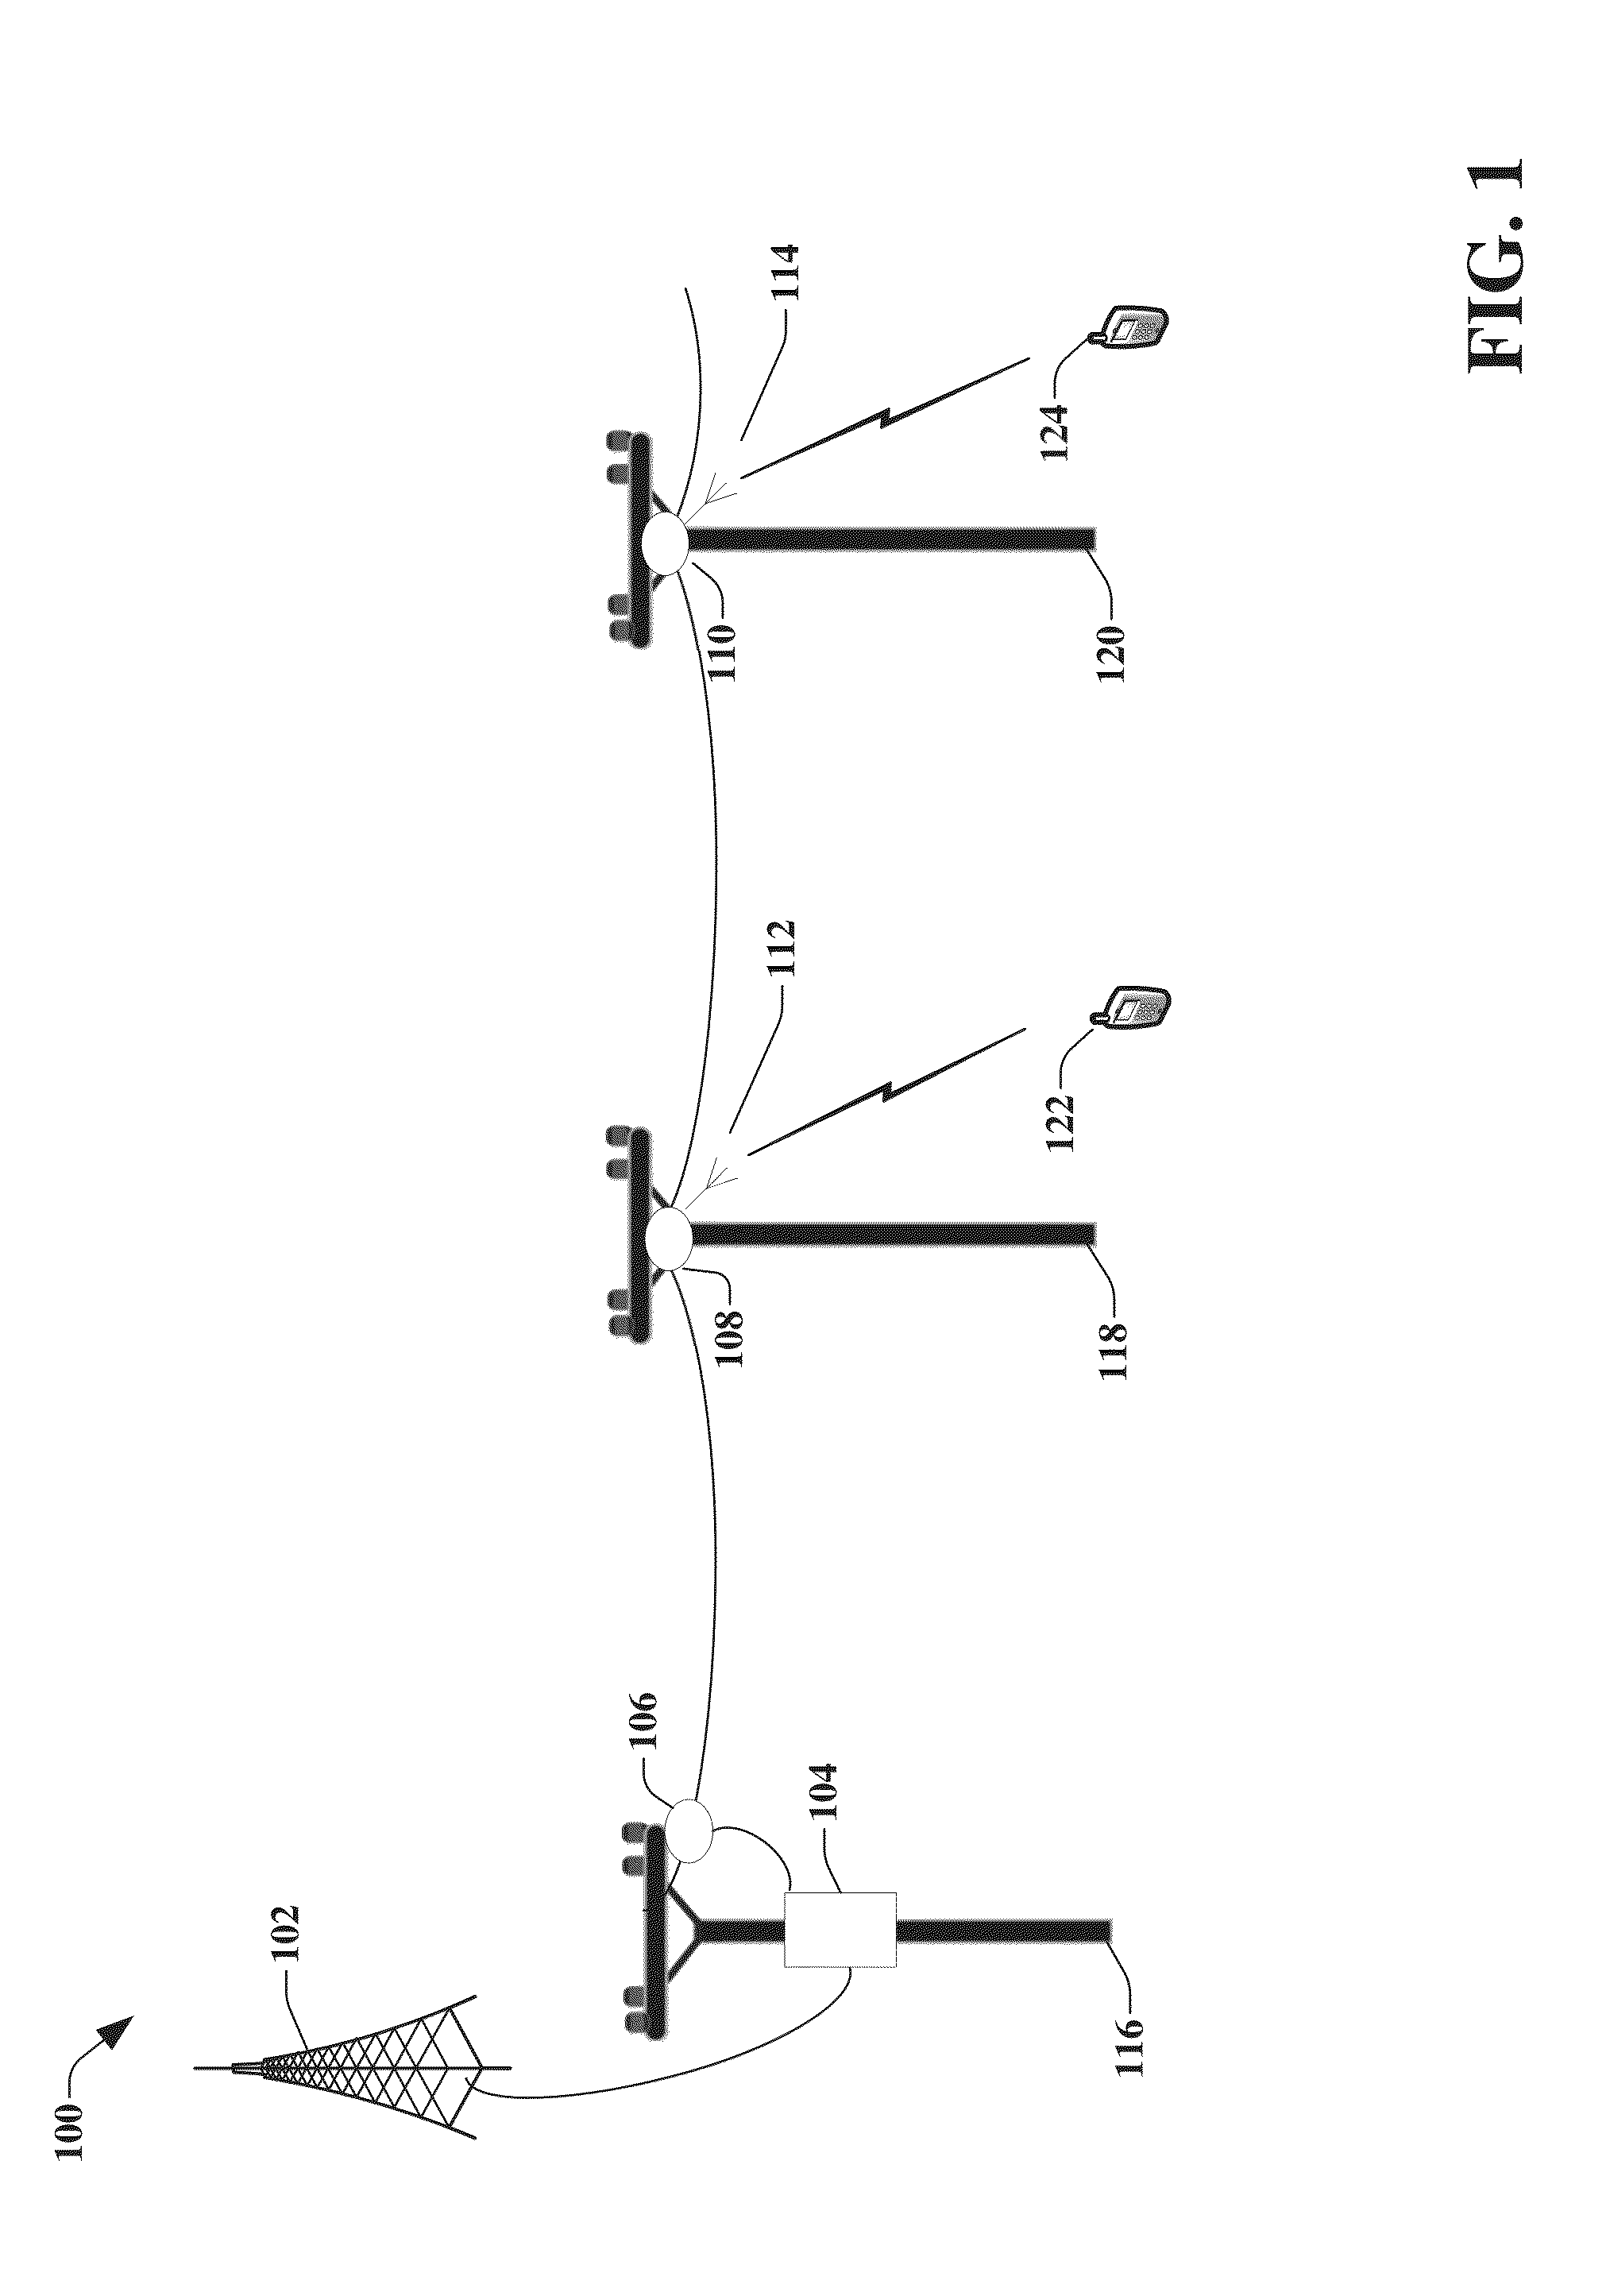 US20160197642A1 - Transmission device with mode division